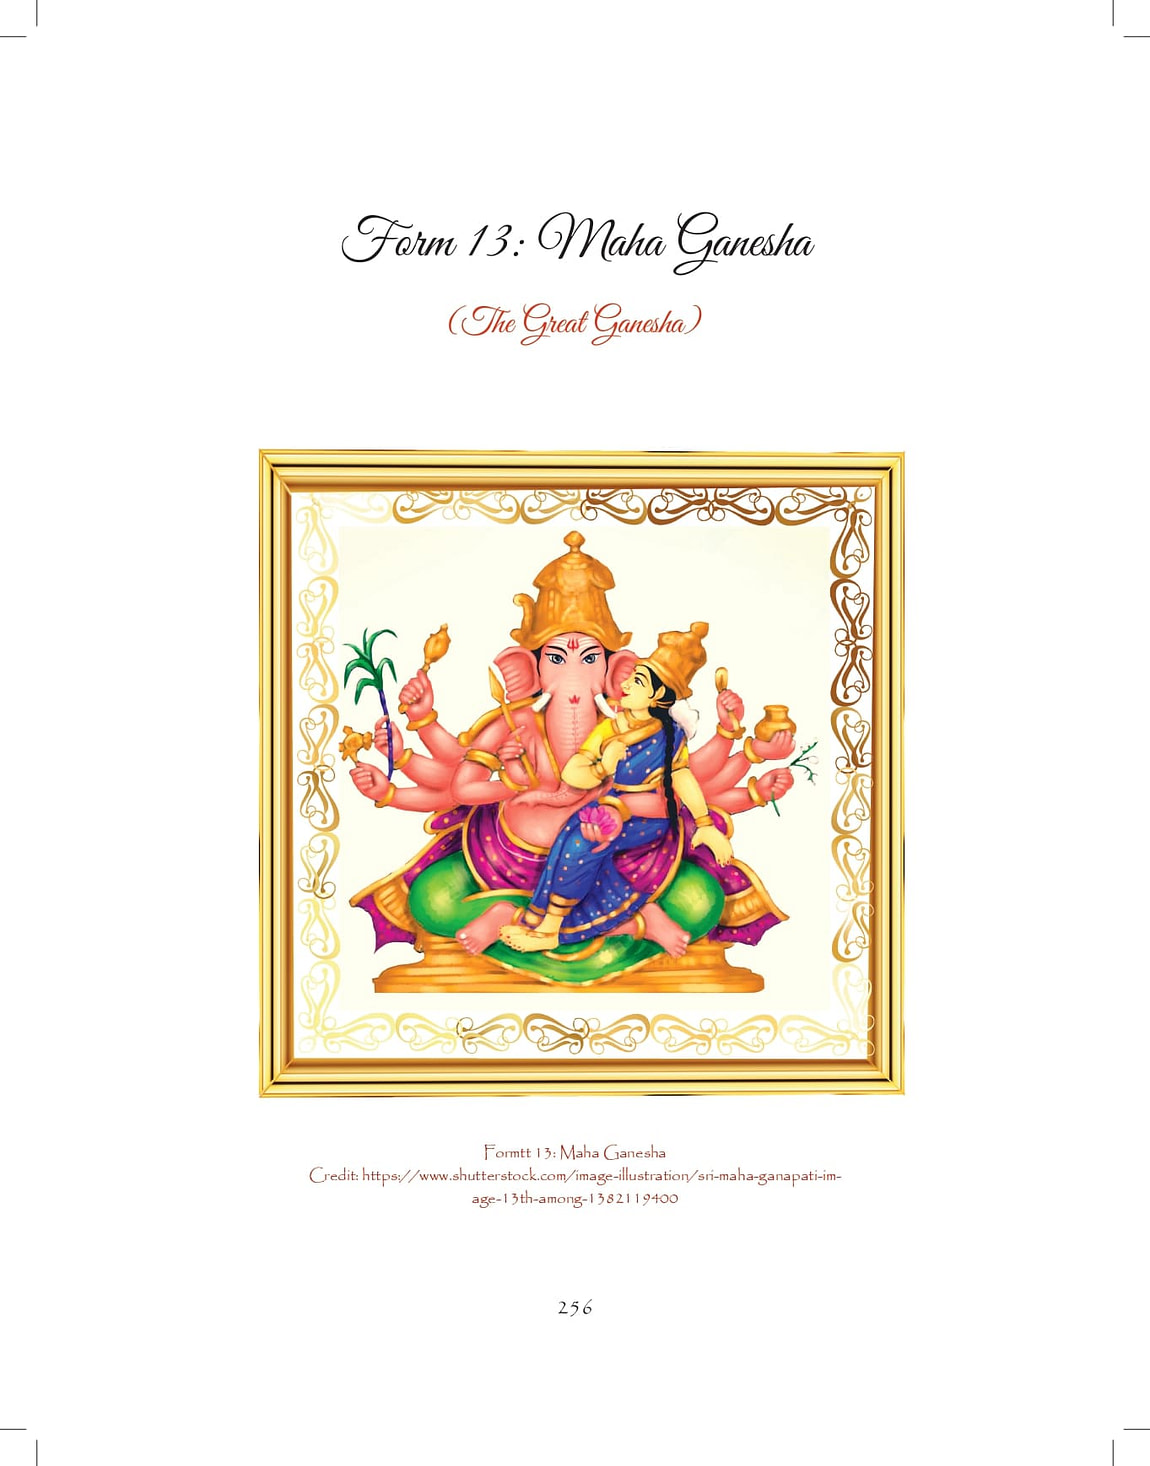 Ganesh-print_pages-to-jpg-0256.jpg